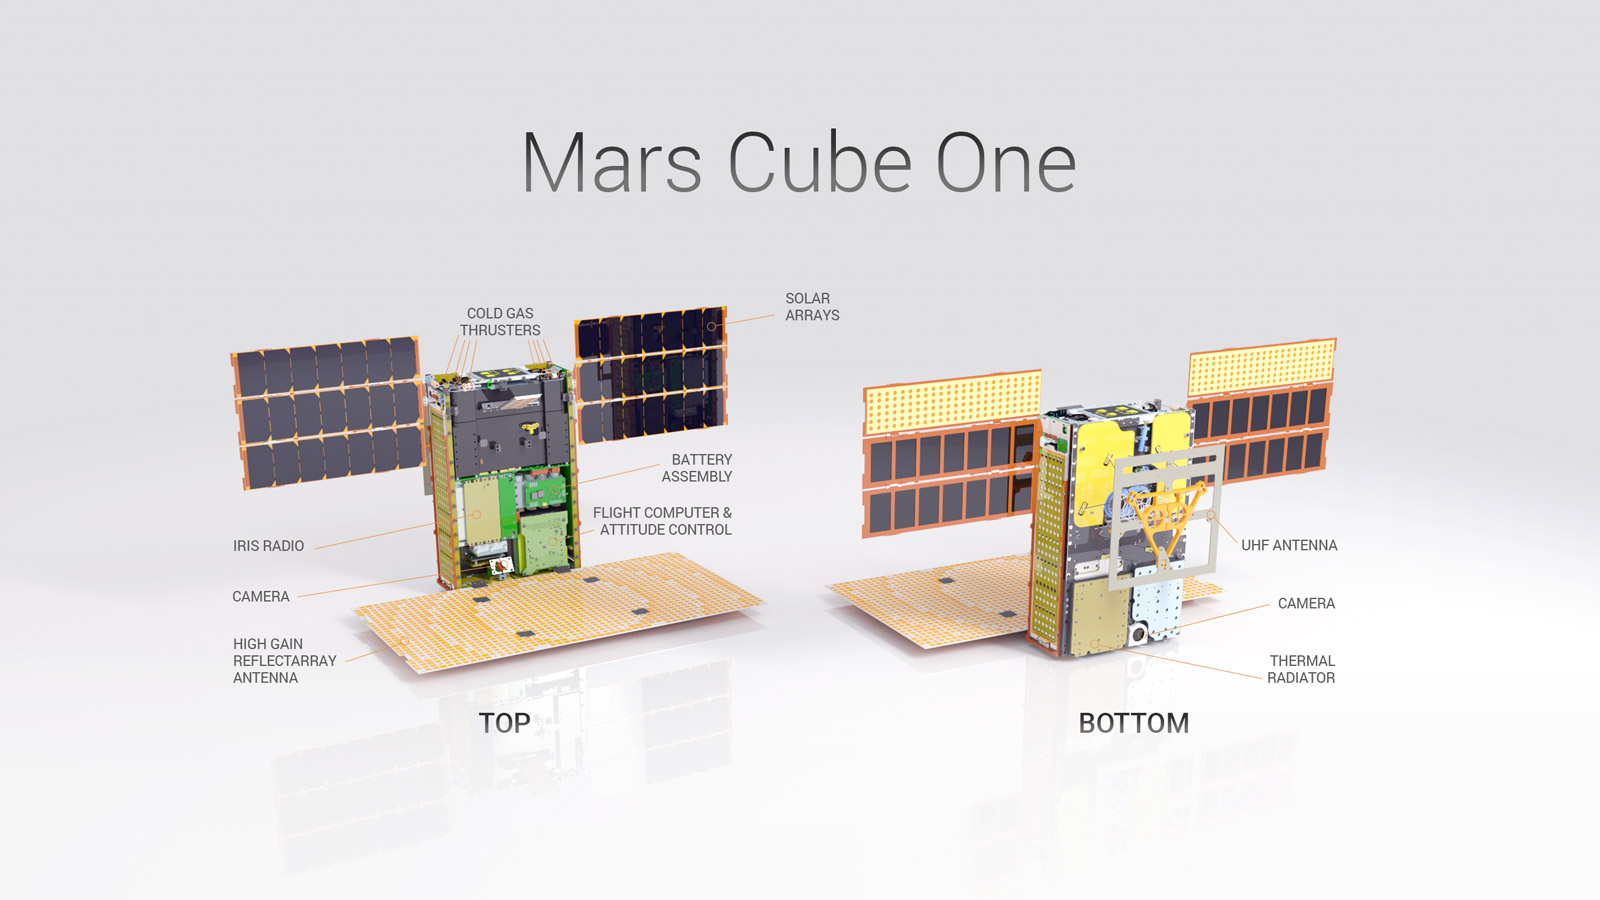 This is an illustration of one of the twin MarCO spacecraft with some key components labeled.